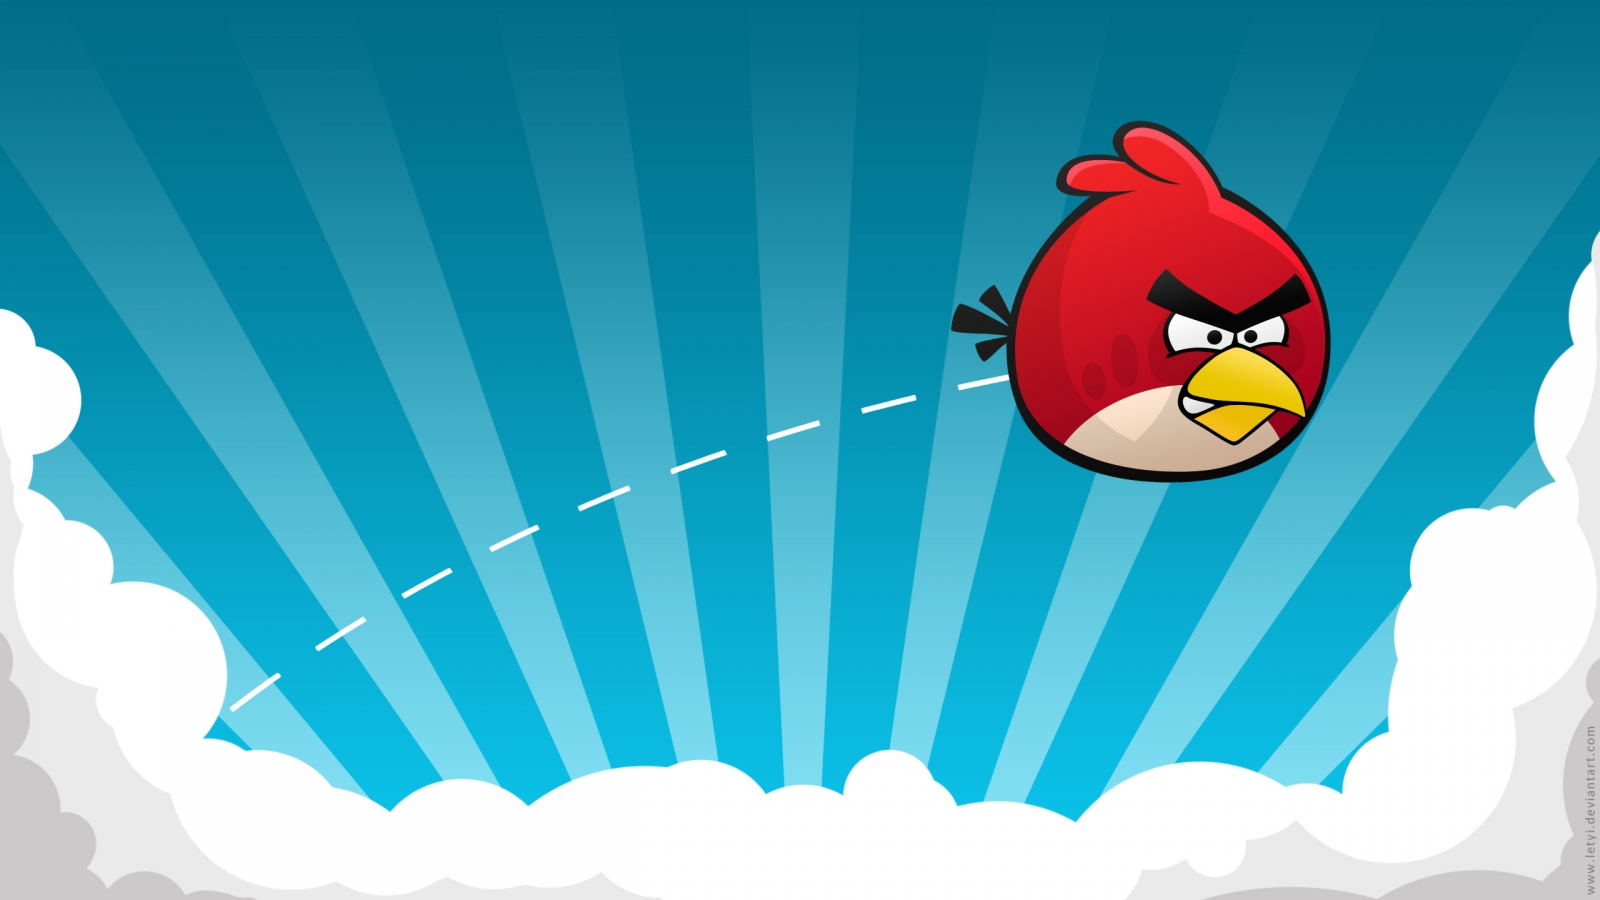 http://3.bp.blogspot.com/-Mngnxr6fSp0/T6eYiThMjOI/AAAAAAAABOI/7GxTlqGXzTQ/s1600/angry-birds-powerpoint-background-7.jpg